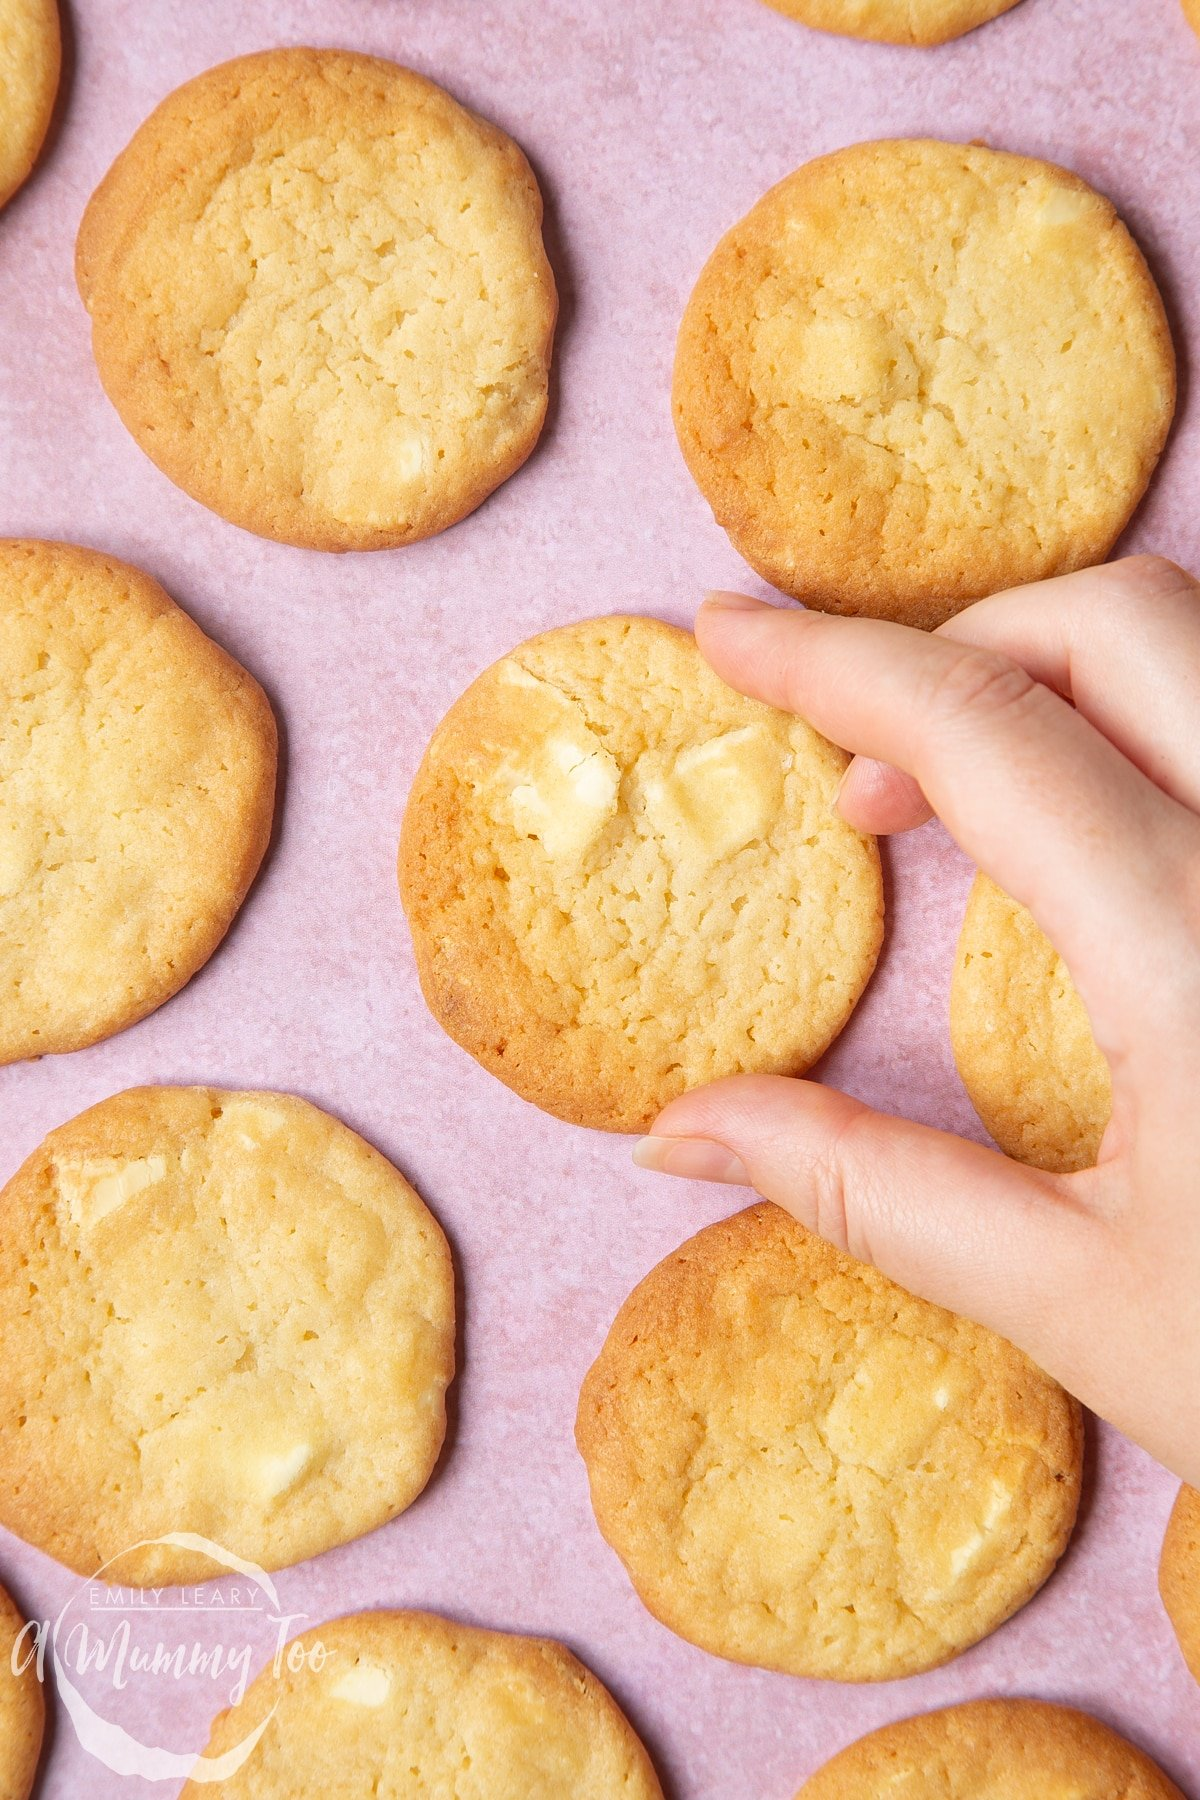 Overhead shot of a hand going in to pick up one of the white chocolate chip cookies.